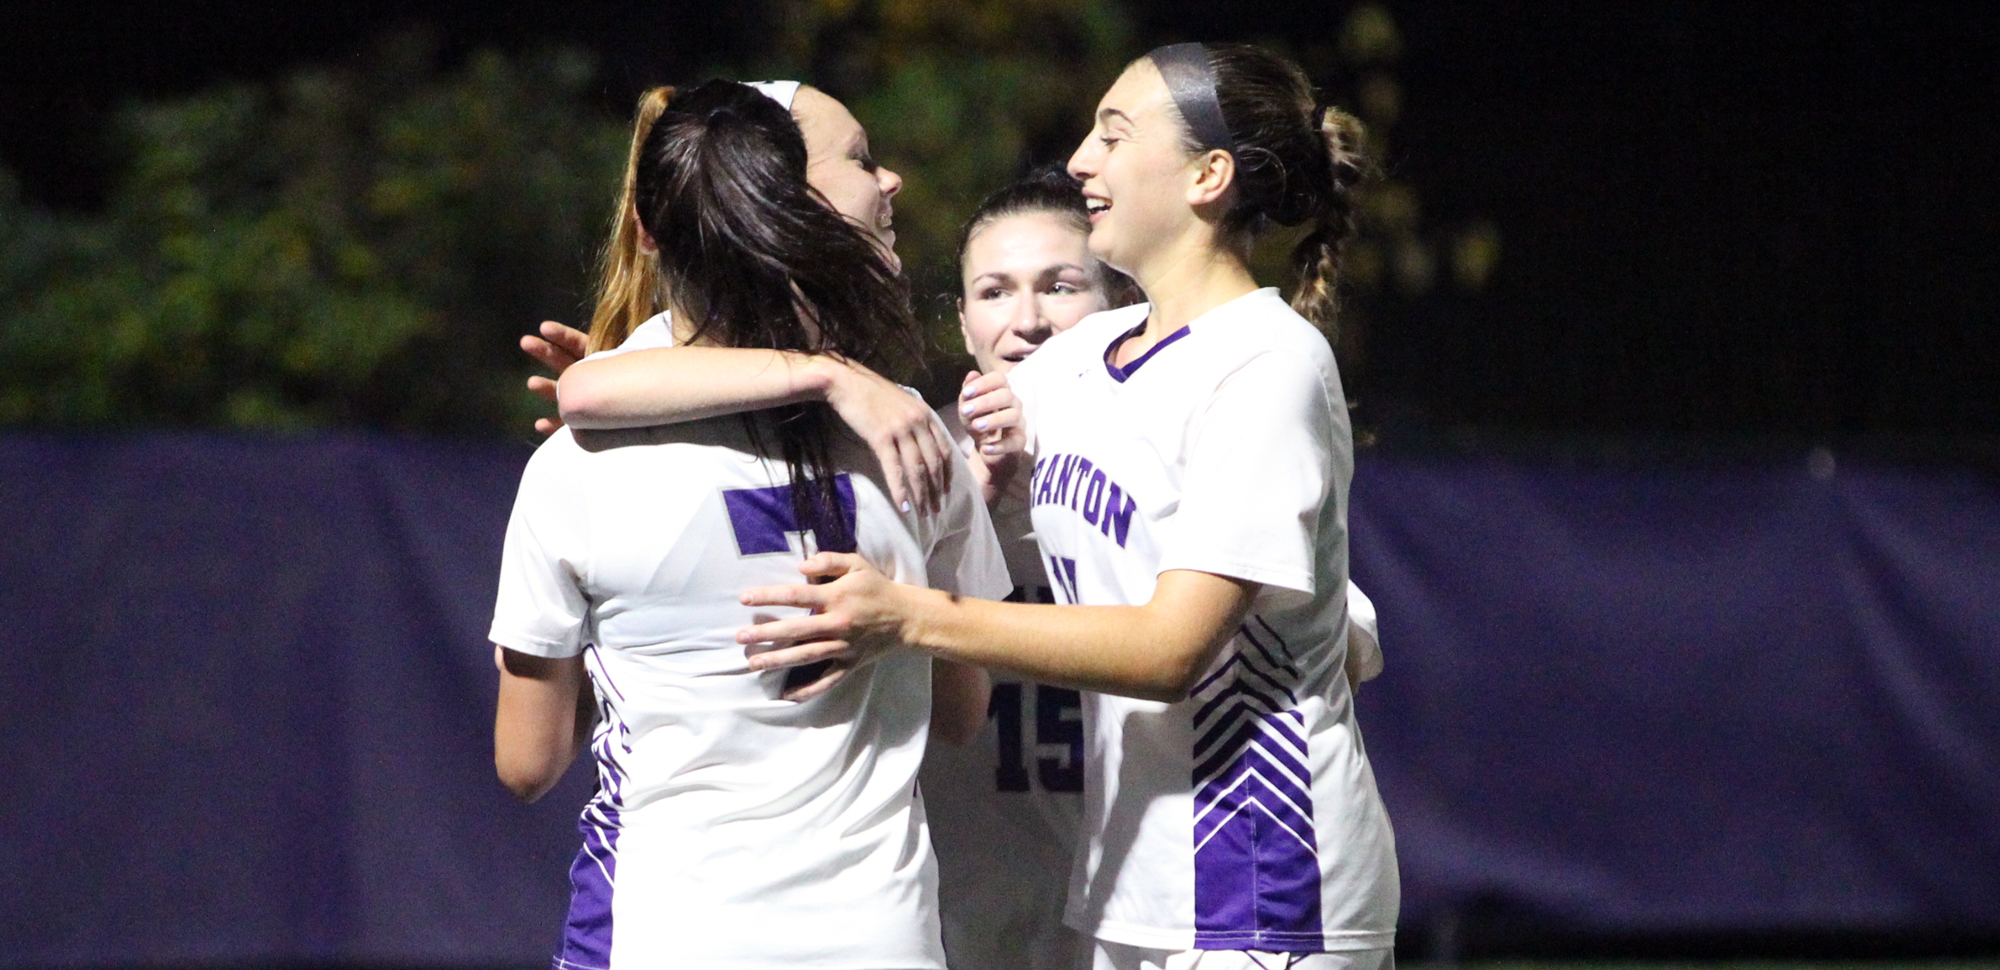 The University of Scranton women's soccer team advanced on penalty kicks in the first round of the NCAA Tournament on Saturday afternoon. © Photo by Timothy R. Dougherty / doubleeaglephotography.com